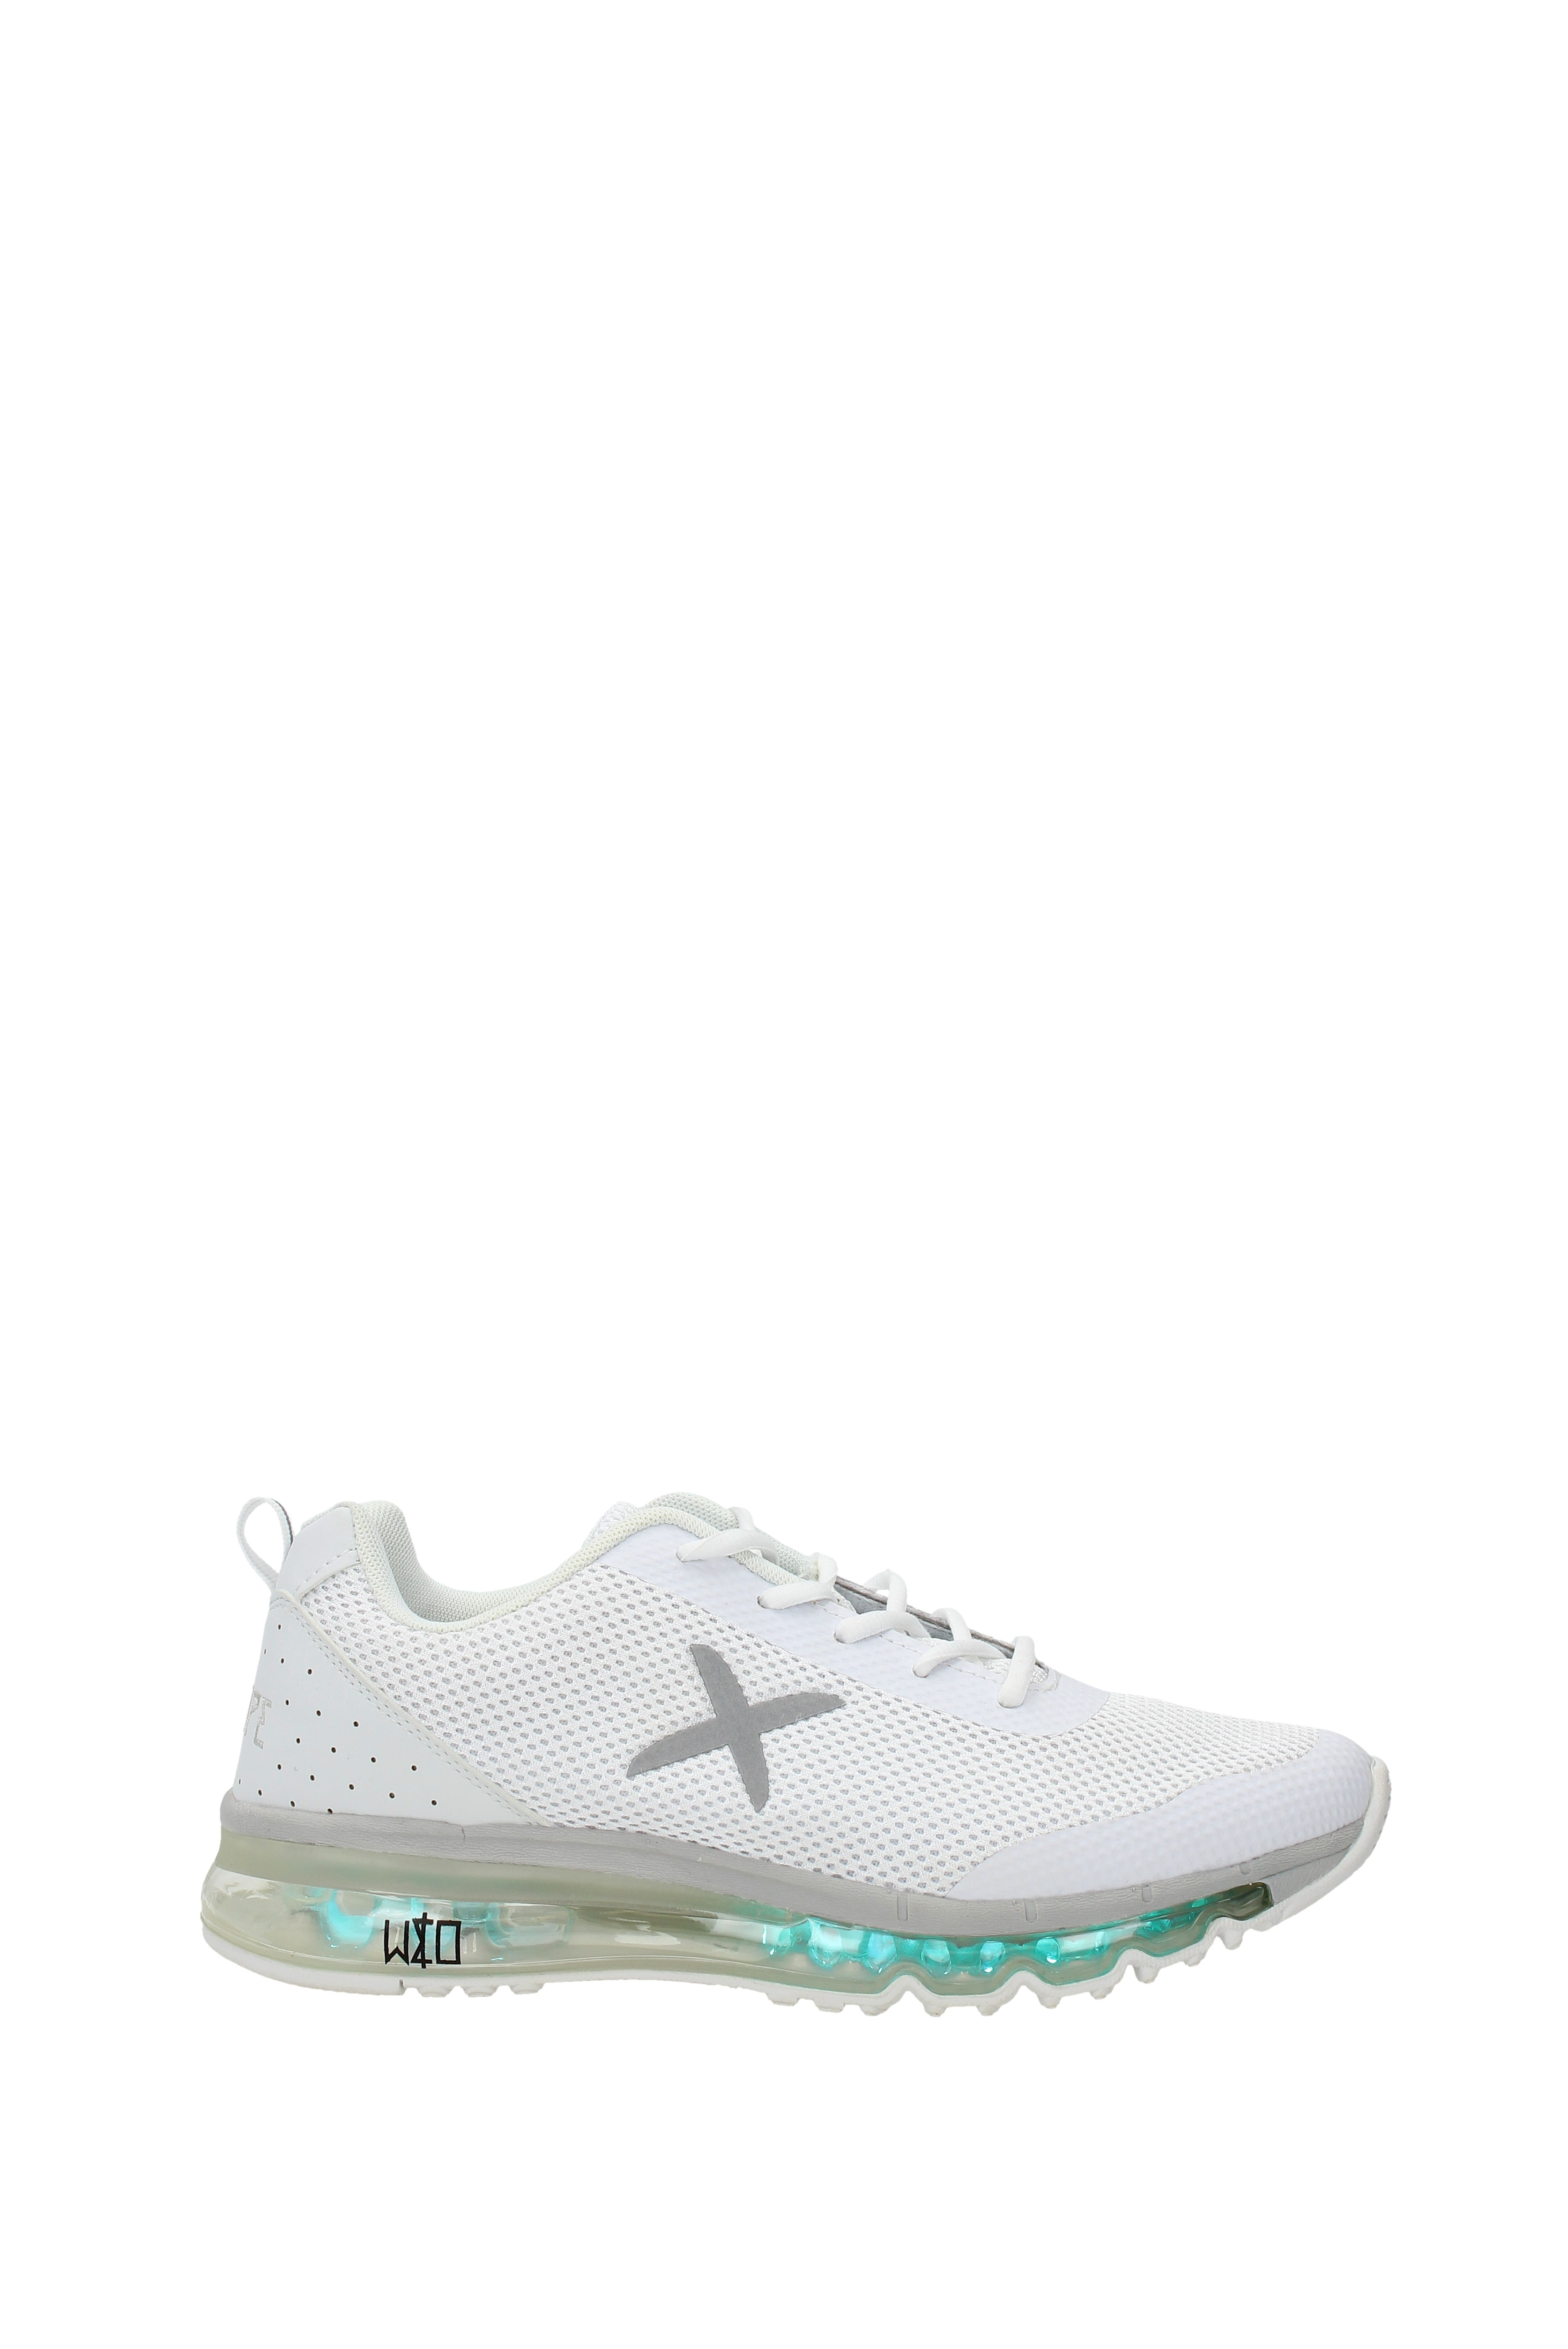 big sale 86b2a 92b18 ... Sneakers Wize and Ope led Zapatos x-run hombre - - - Tessuto (EARTHMADE